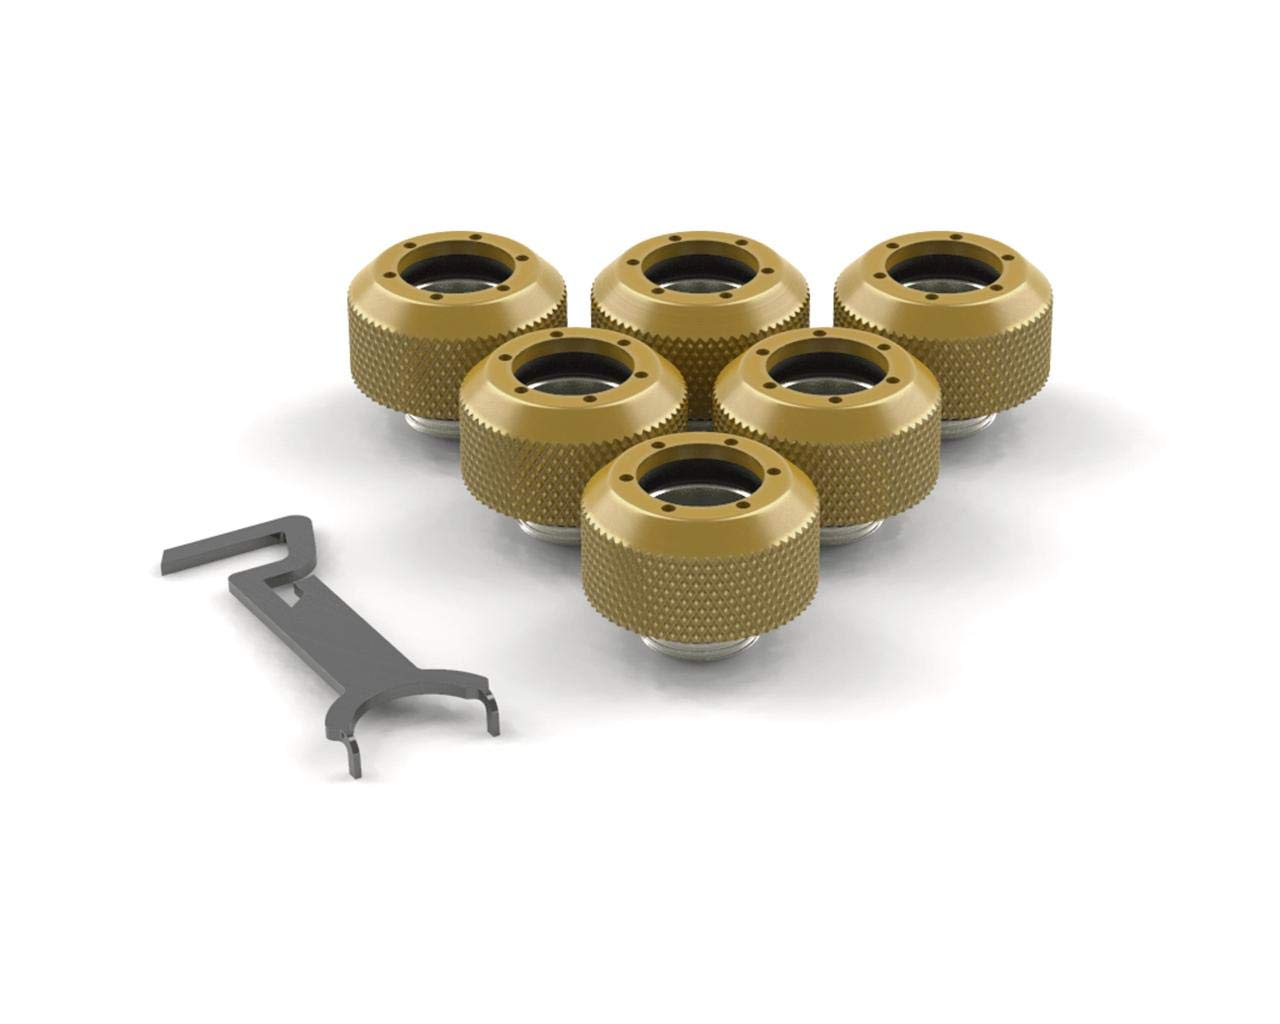 PrimoChill 1/2in. Rigid RevolverSX Series Fitting - Candy Gold - 6 Pack